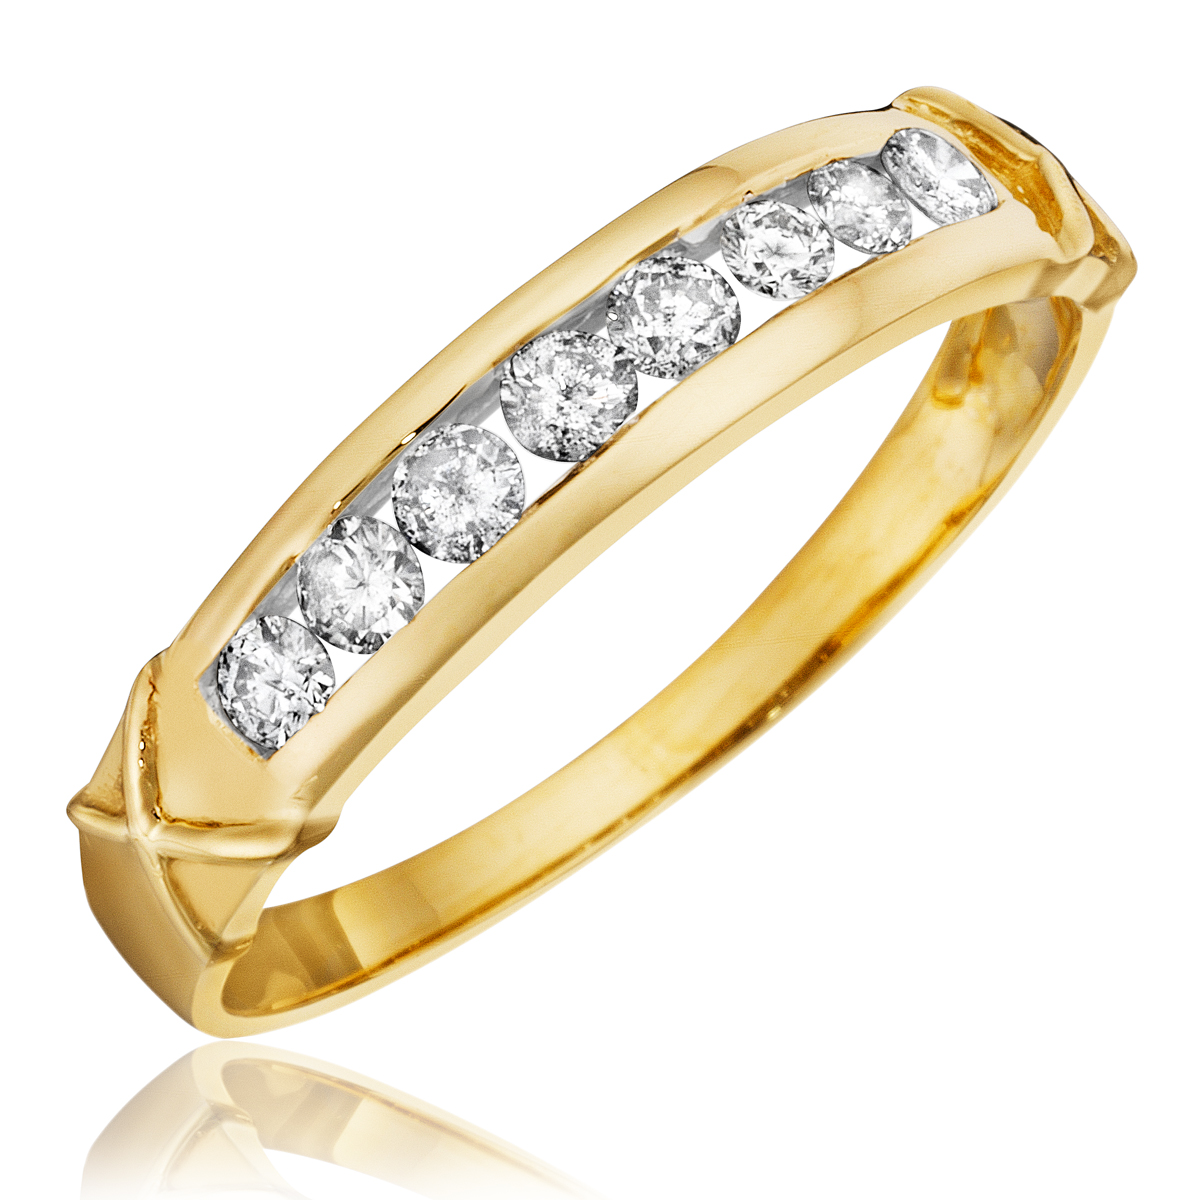 1/3 CT. T.W. Diamond Women's Wedding Band 14K Yellow Gold ...